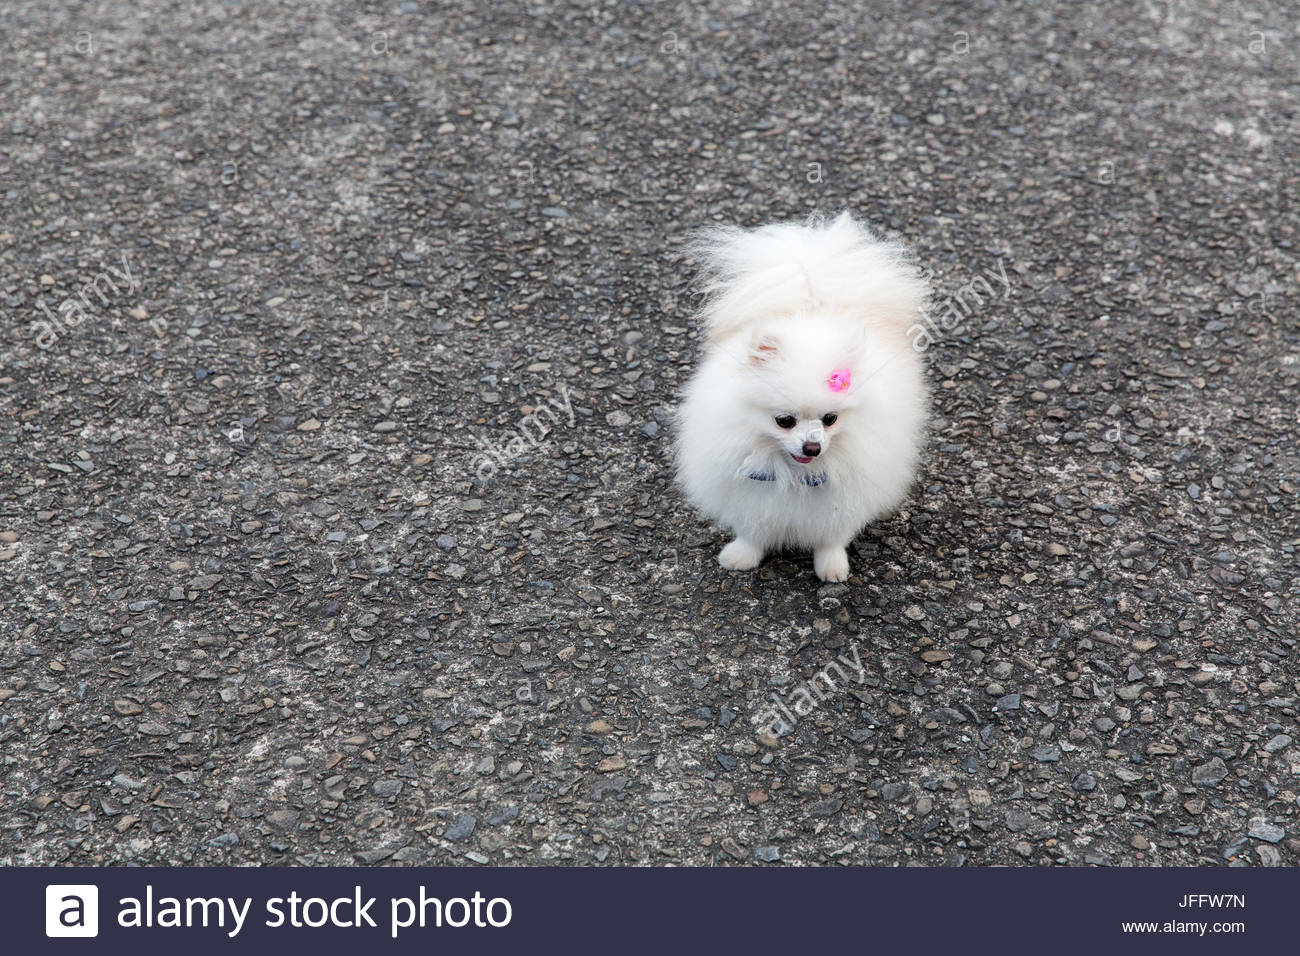 Portrait of a small, white, pet dog in a park. - Stock Image